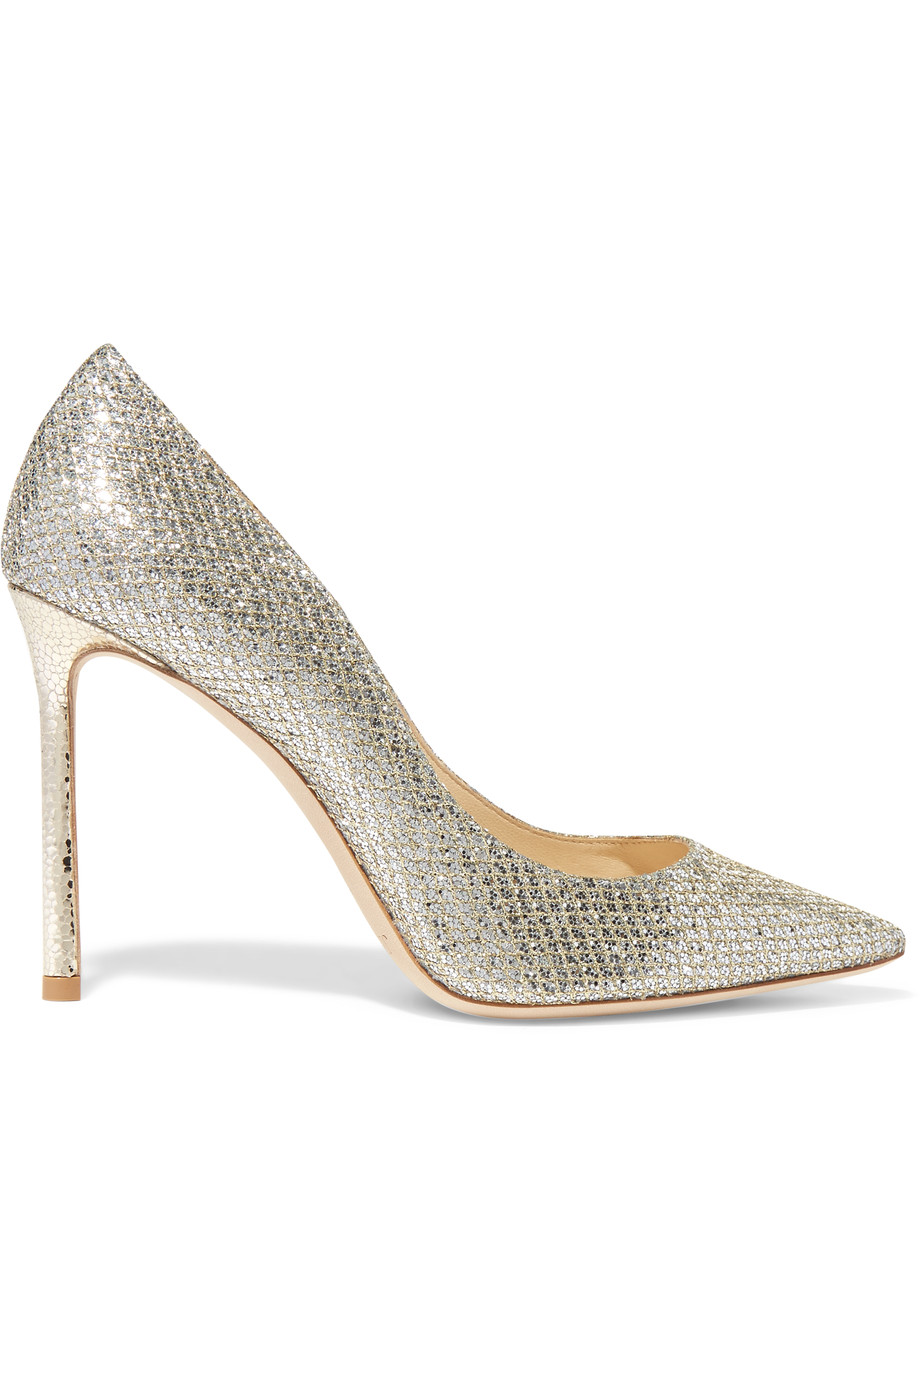 https://www.net-a-porter.com/us/en/product/810116/jimmy_choo/romy-glittered-leather-pumps